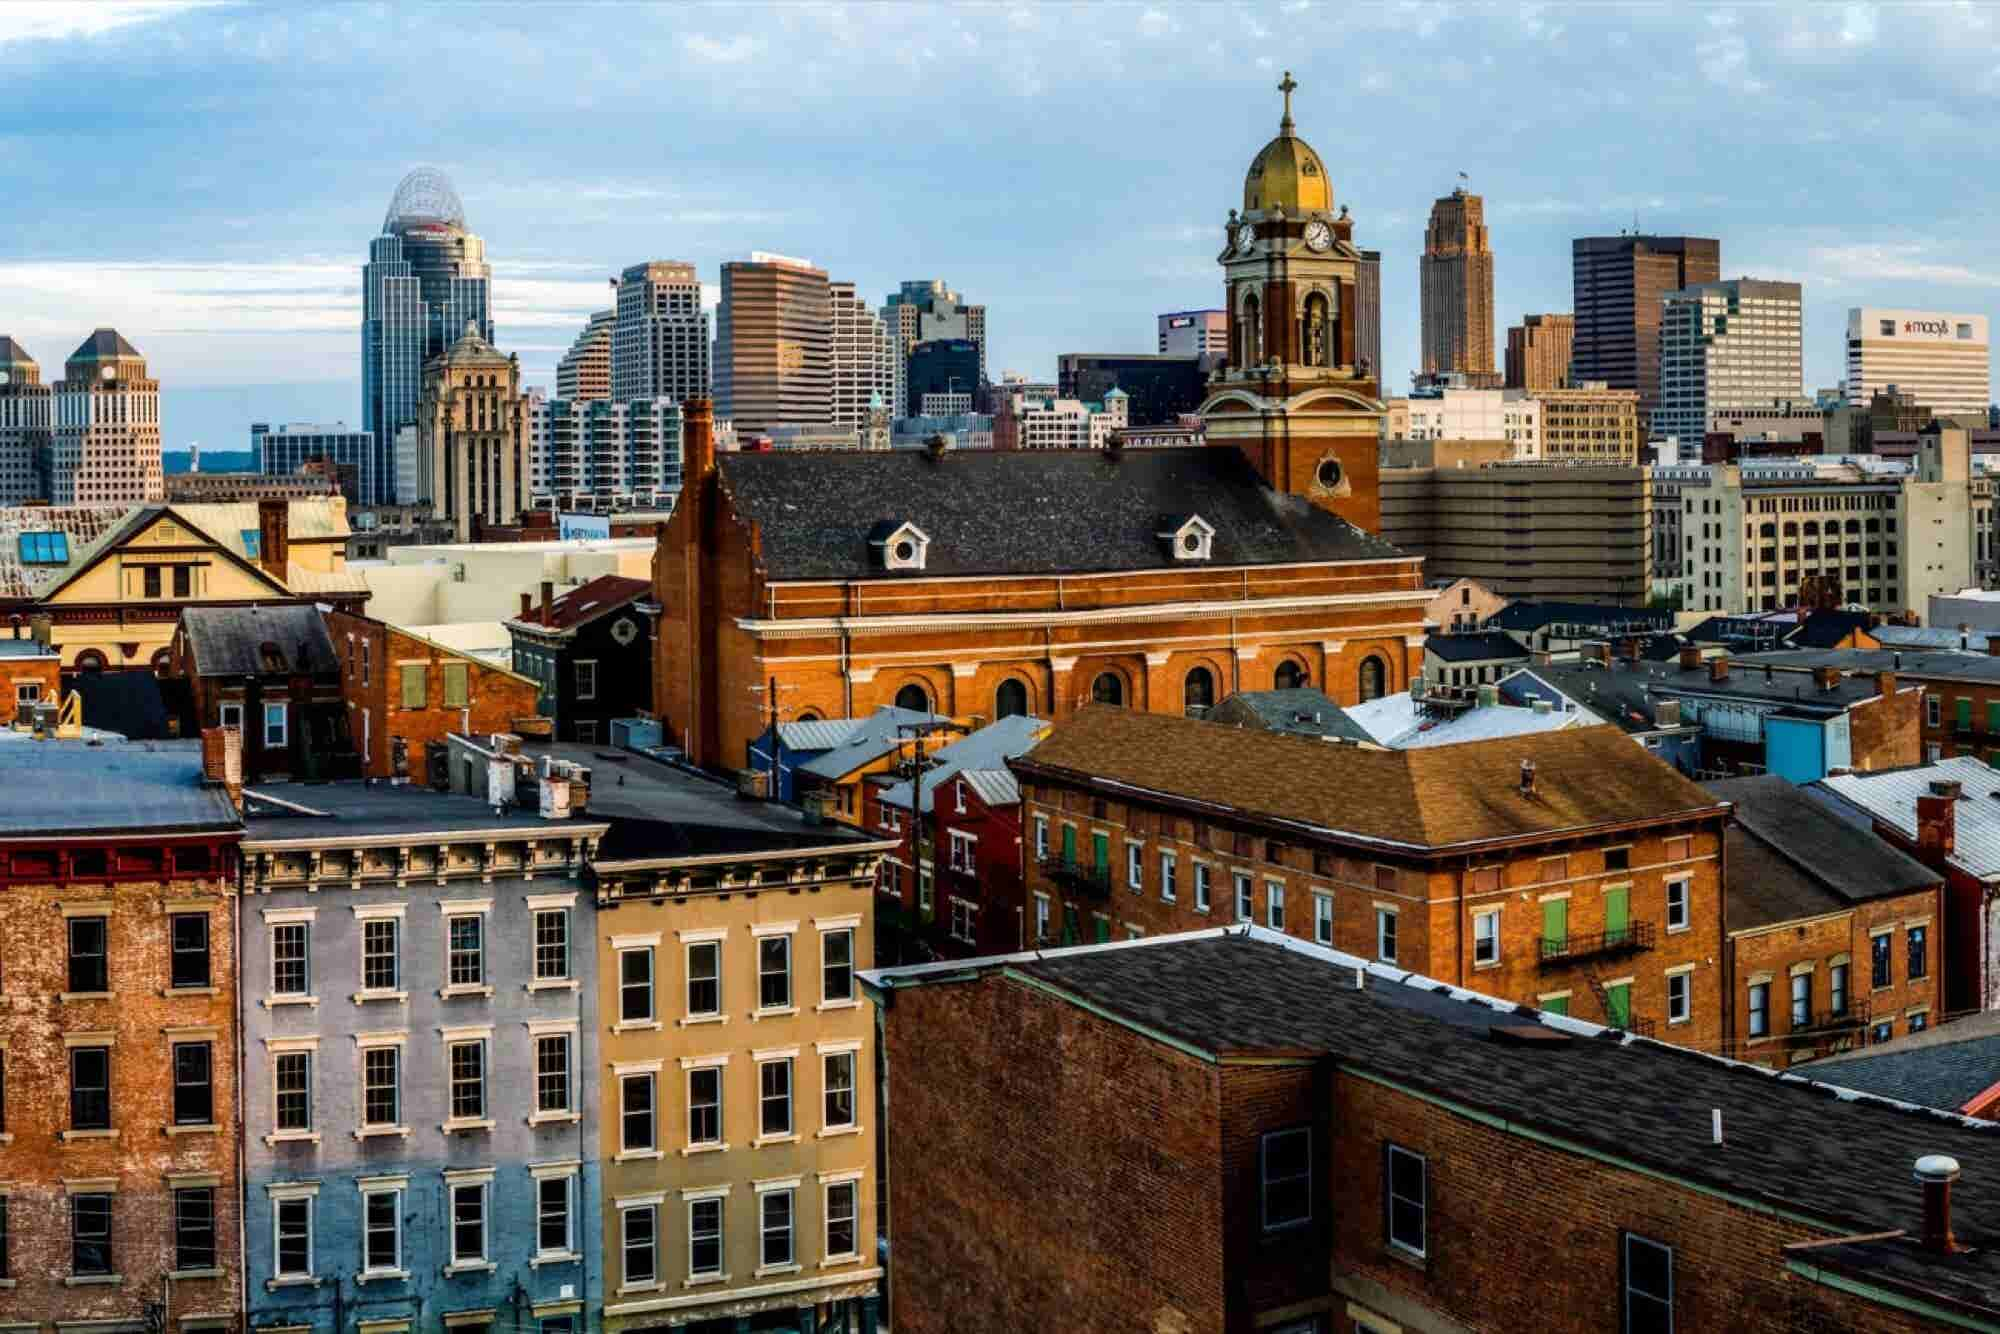 4 Qualities That Make for a Great Startup City